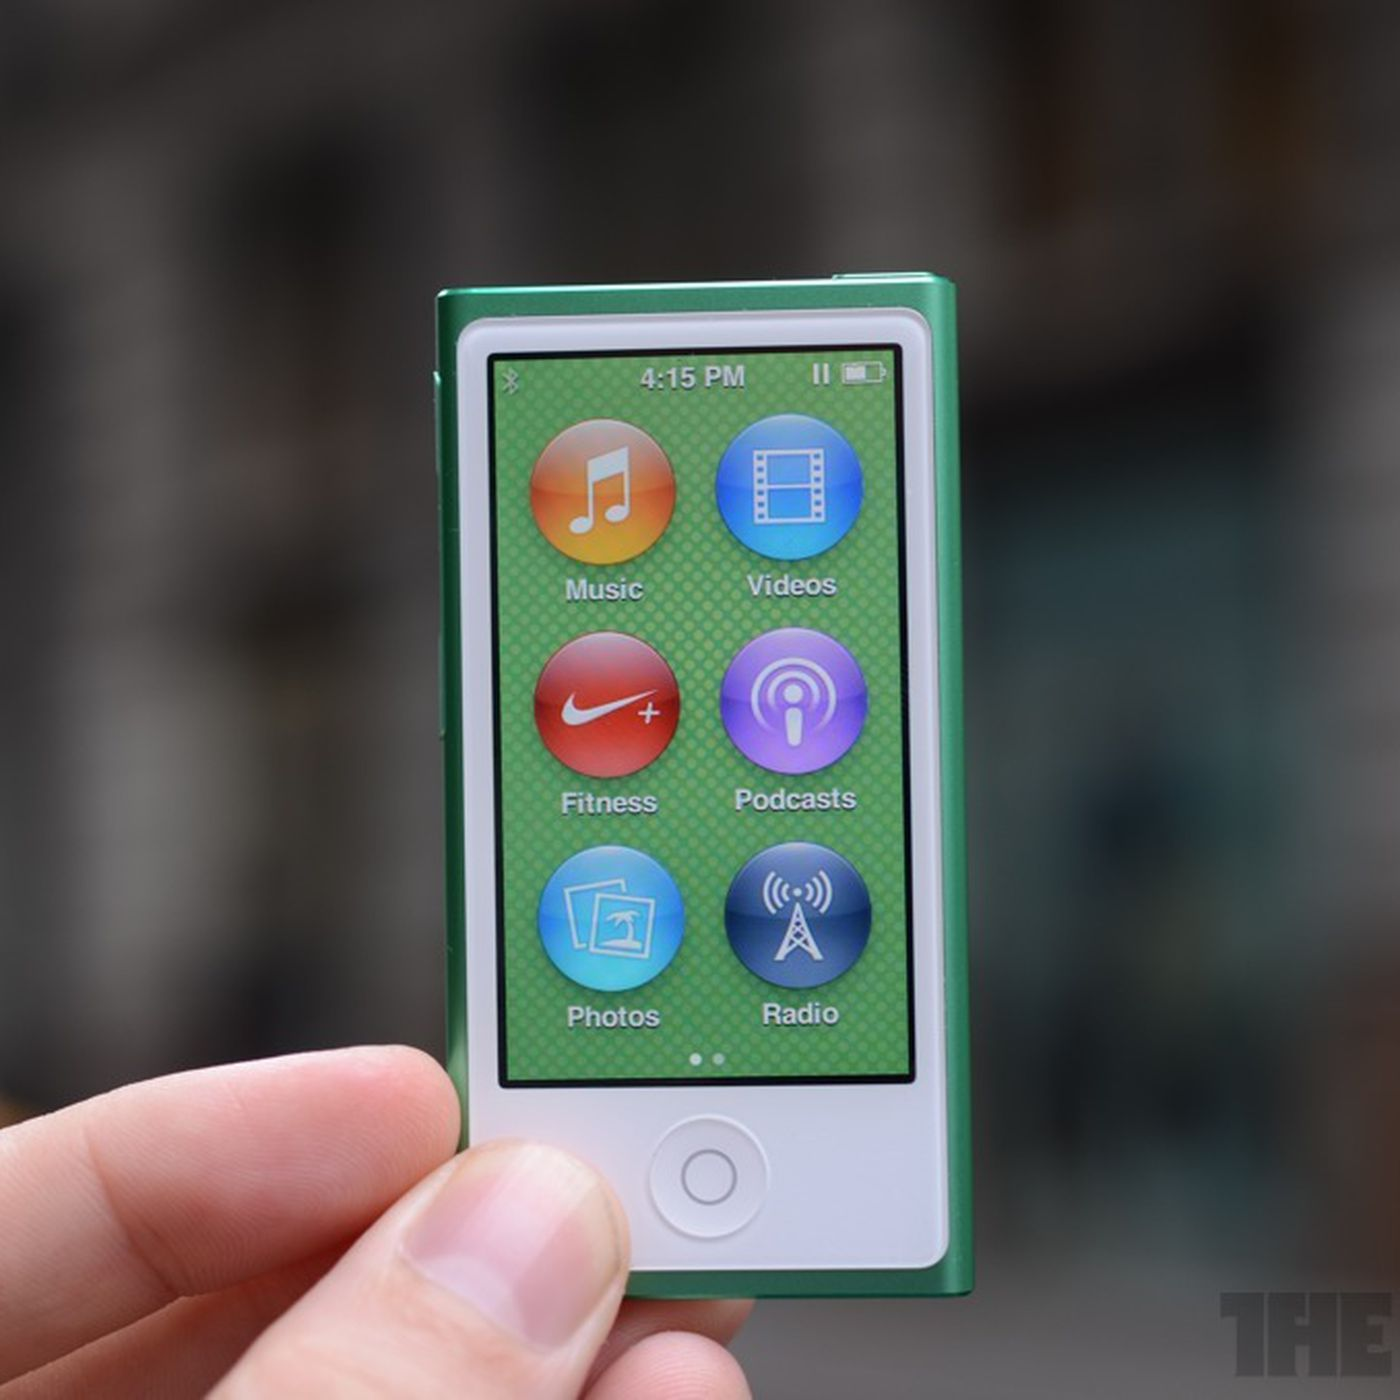 Apple Confirms Ipod Nano And Ipod Shuffle Have Been Discontinued The Verge